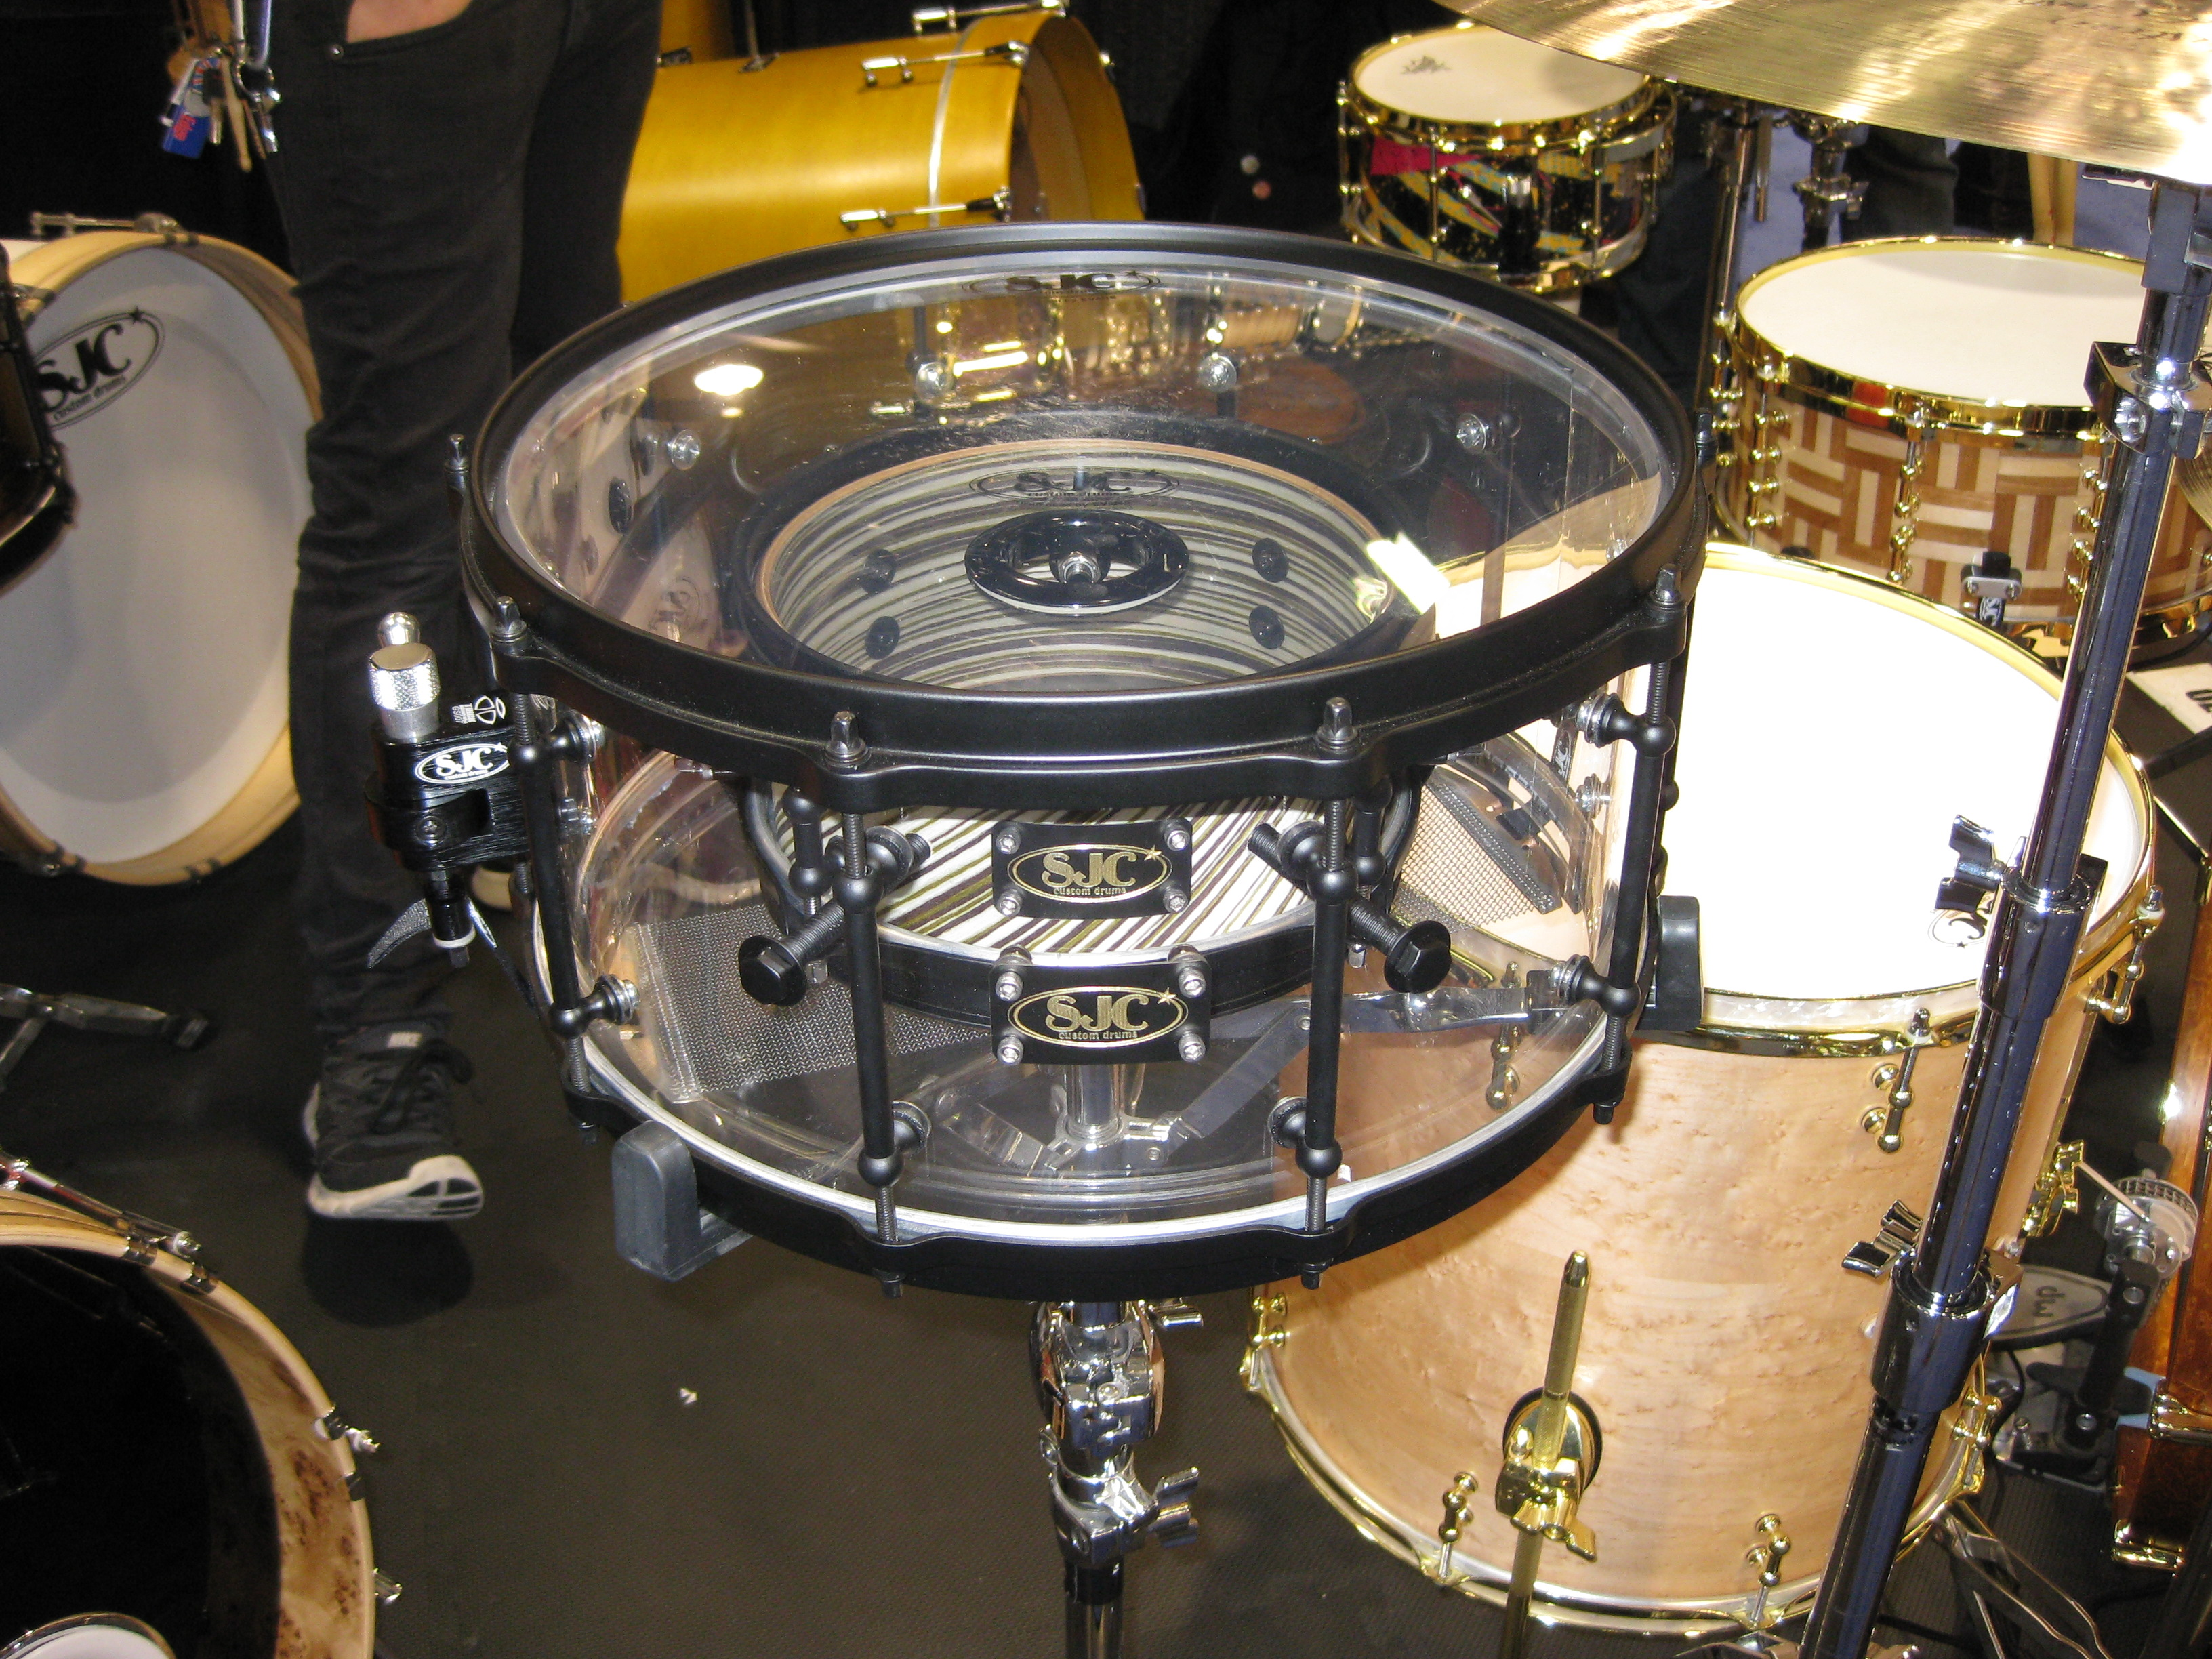 drum building supplies parts and terms explained how to build a custom drum set. Black Bedroom Furniture Sets. Home Design Ideas